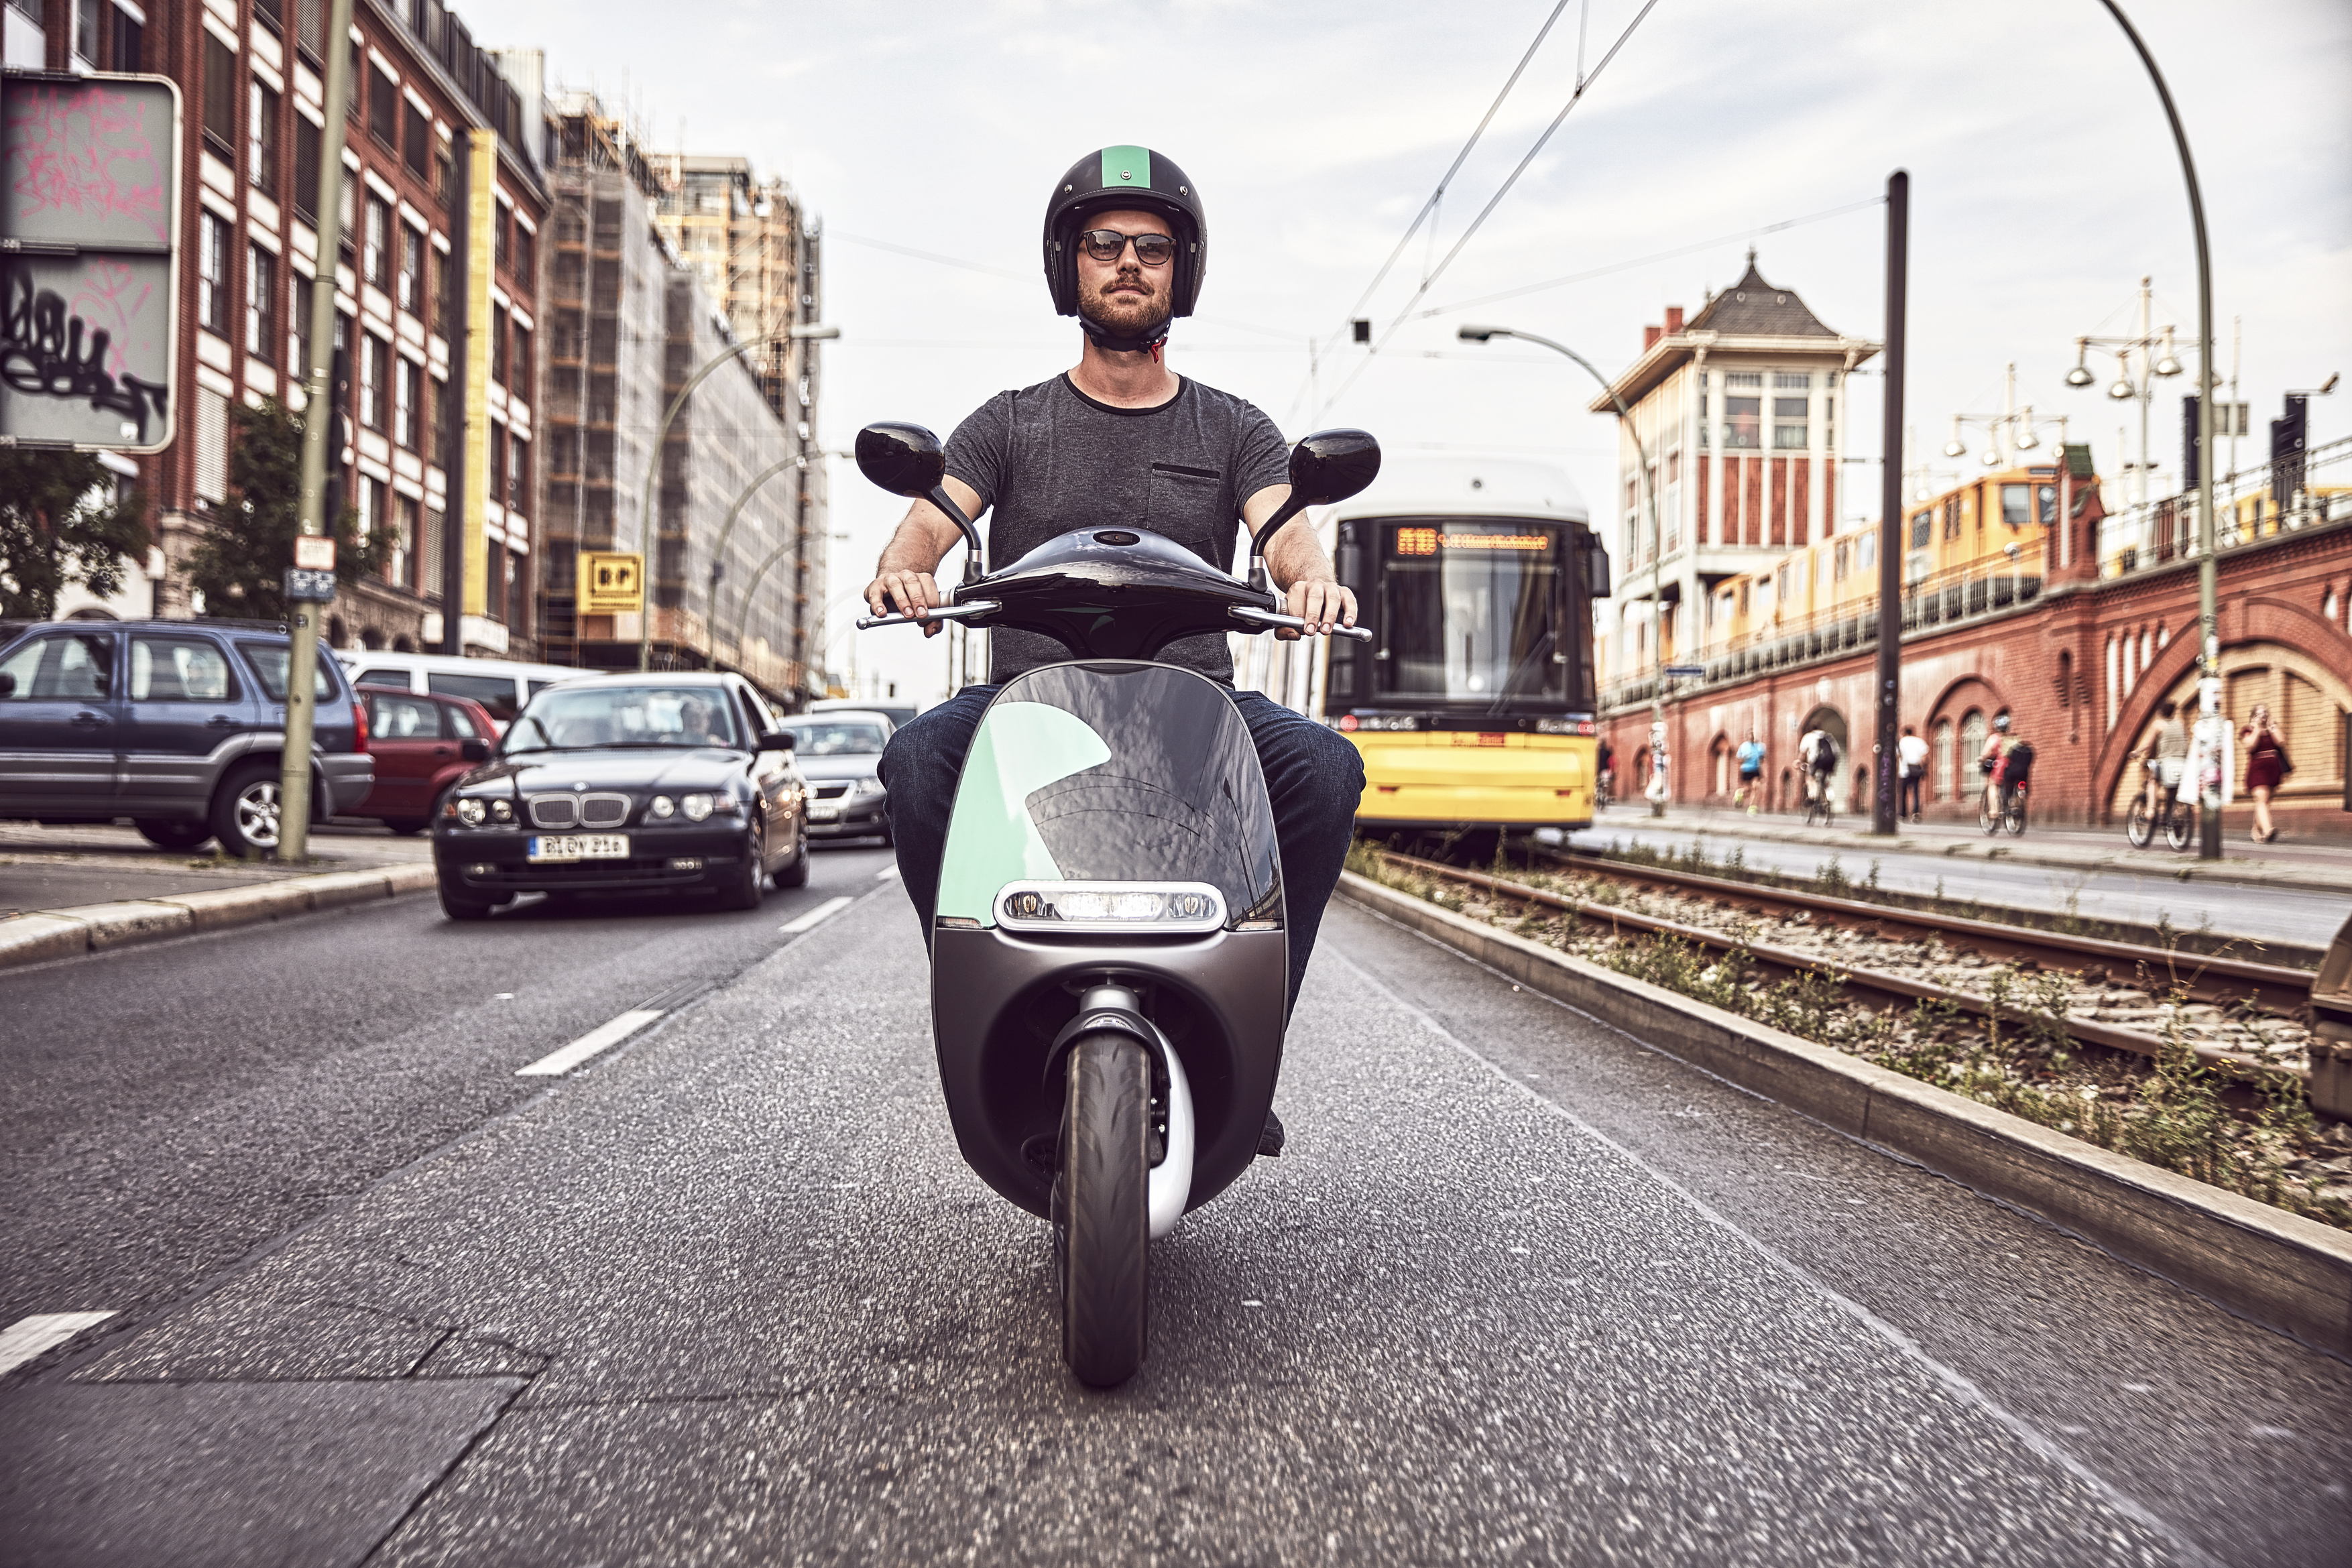 E-Scooter sharing service COUP